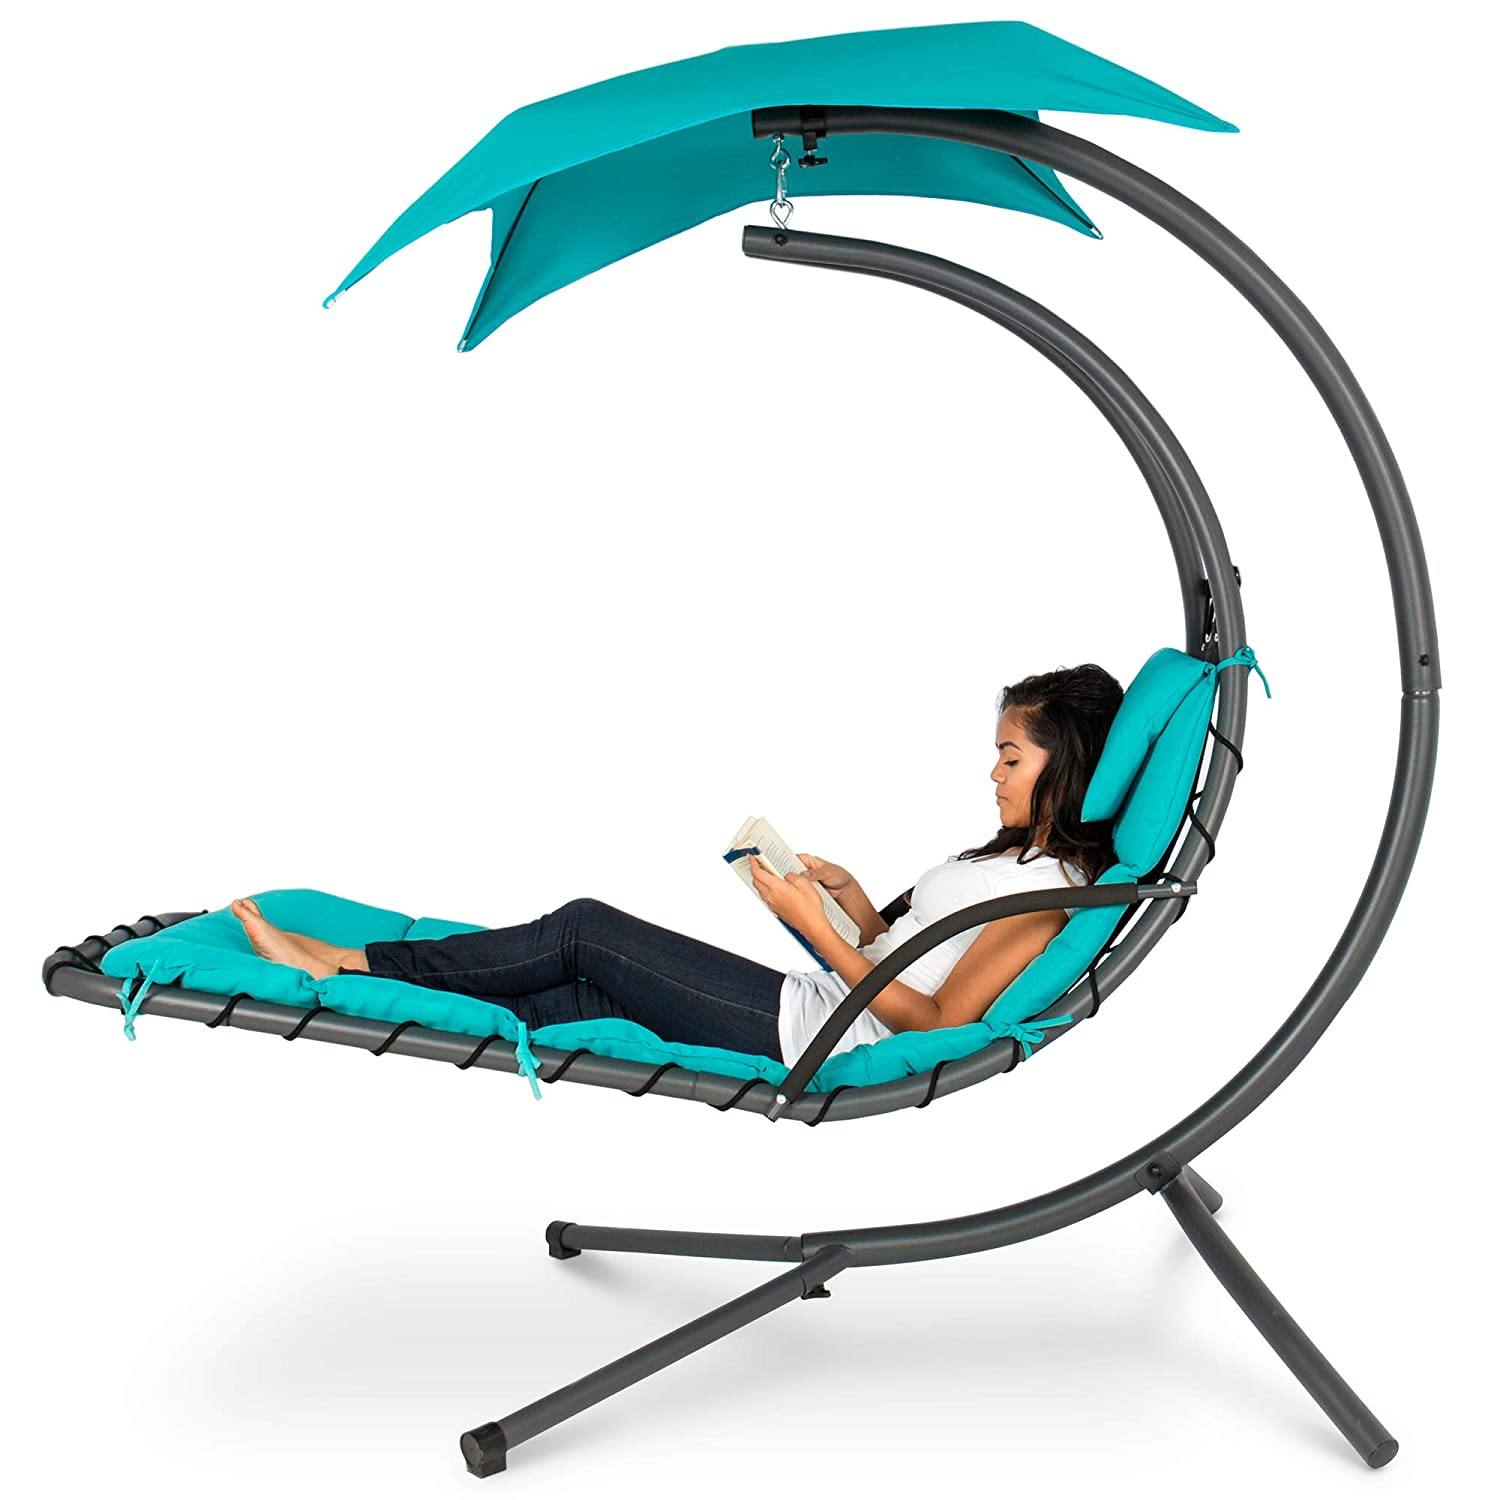 Top 10 Best Outdoor Lounge Chairs